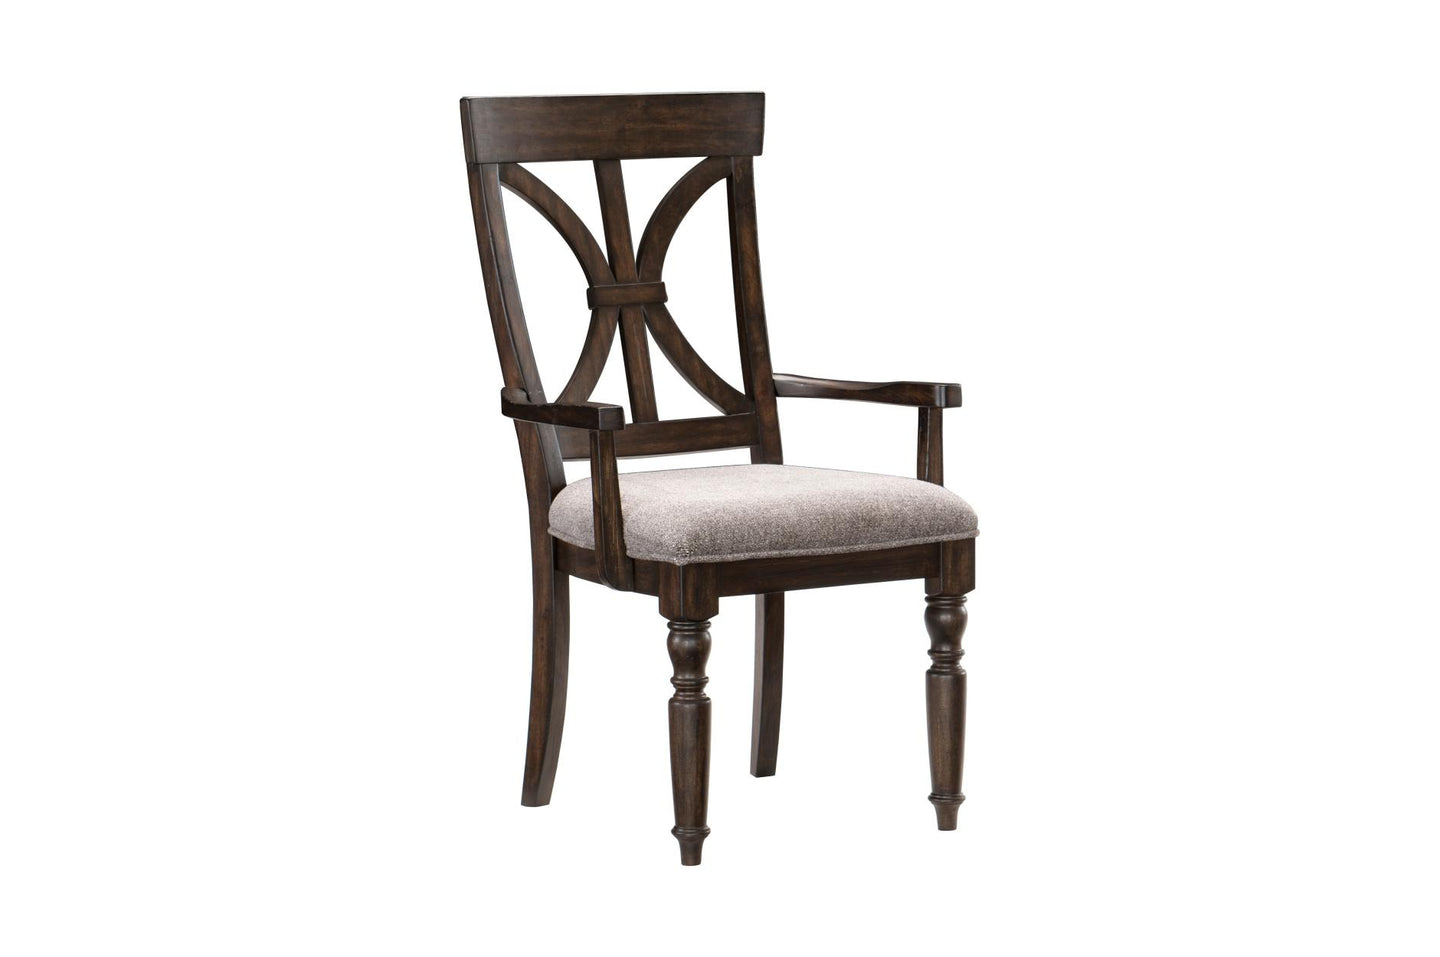 Homelegance Cardano Brown Wood Finish 2 Piece Dining Arm Chair